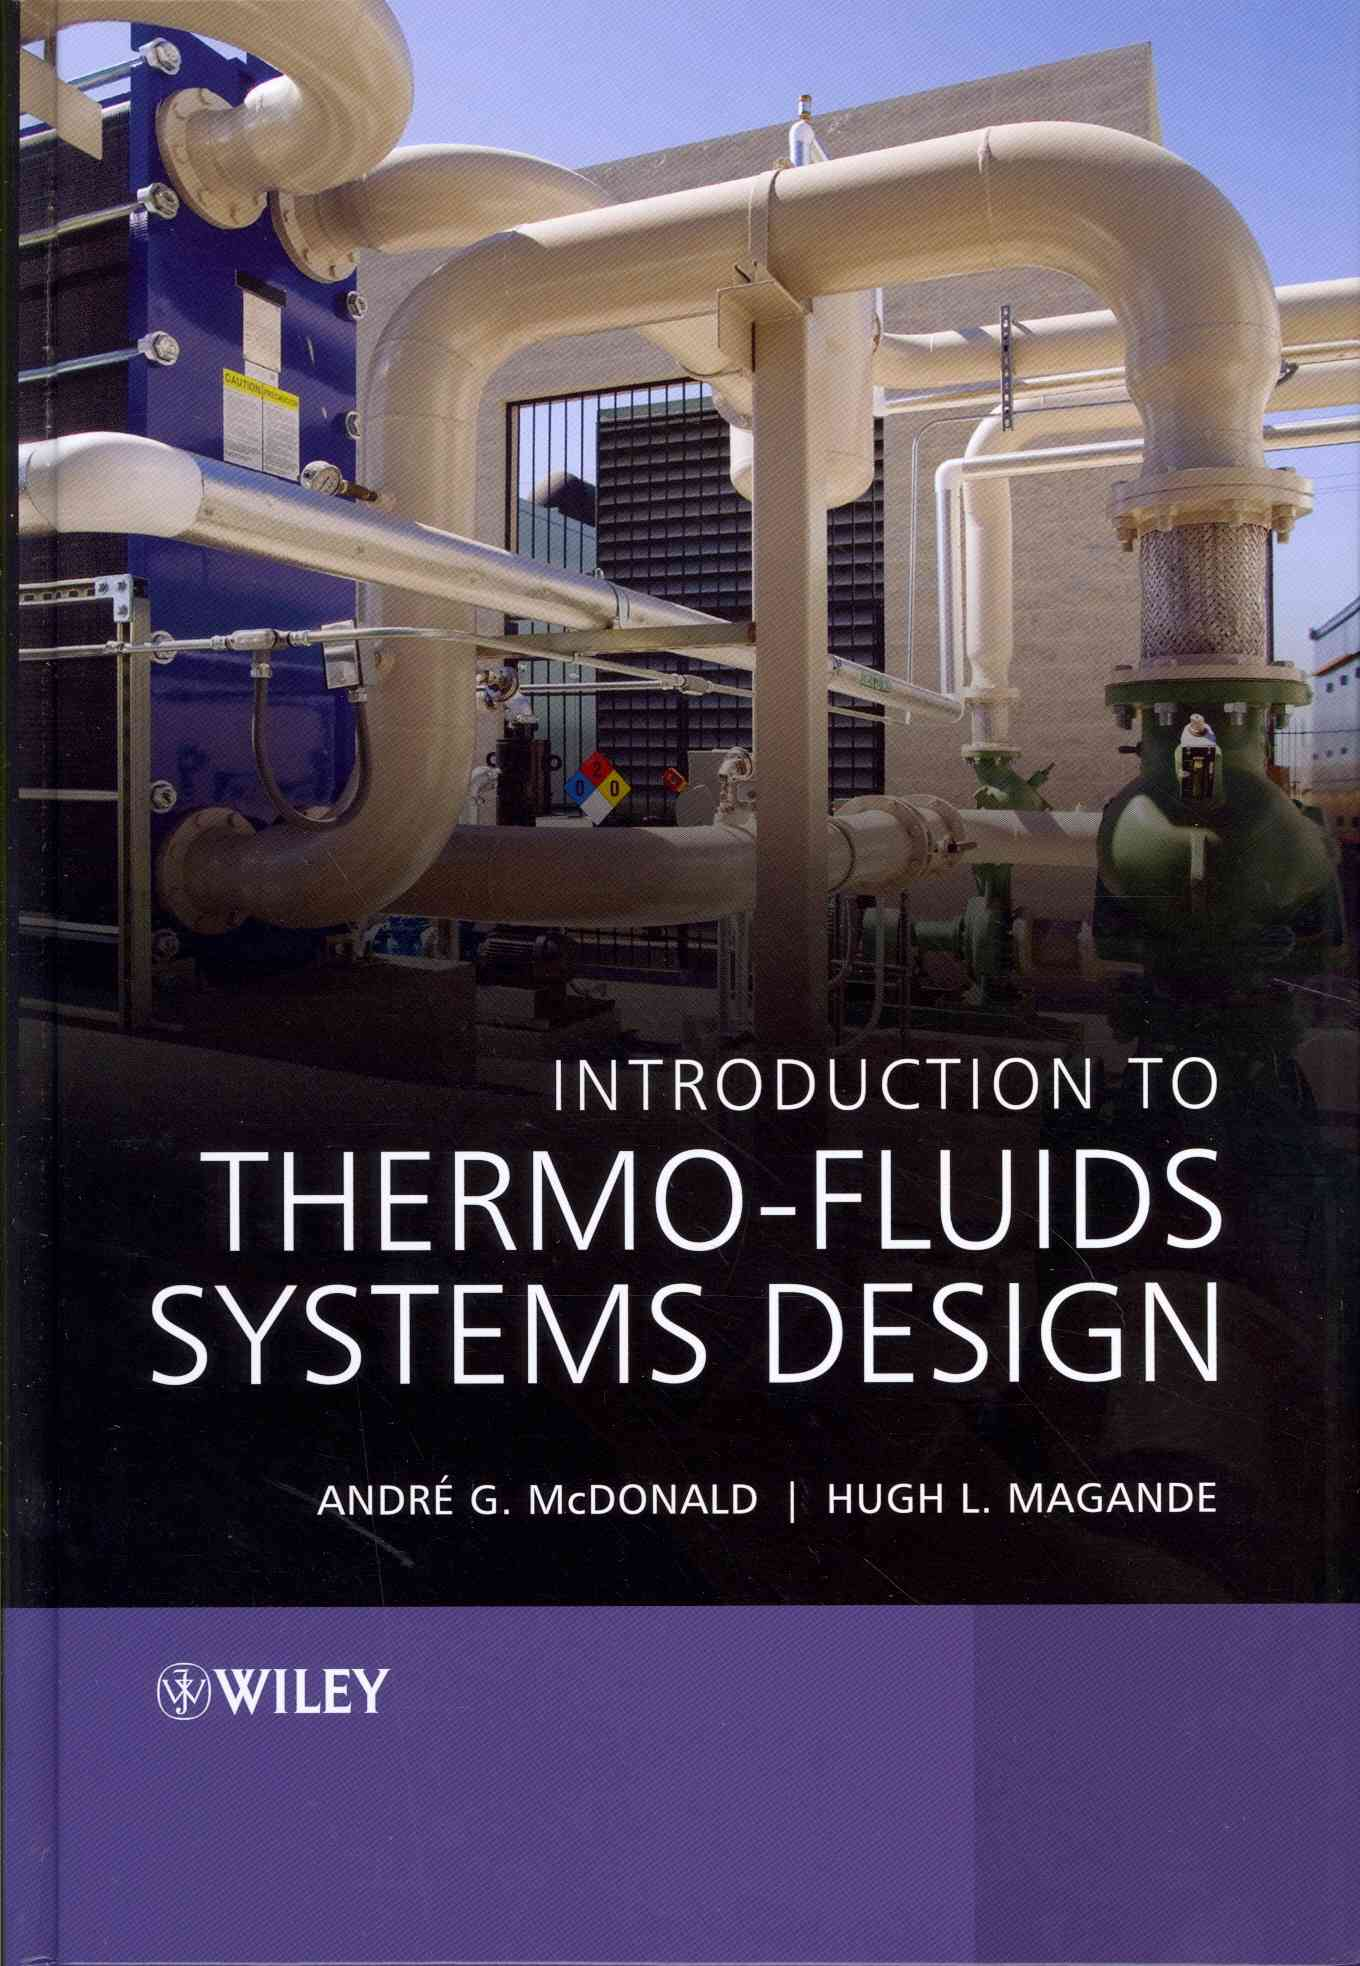 Introduction to Thermo-Fluids Systems Design By Mcdonald, Andre Garcia/ Magande, Hugh